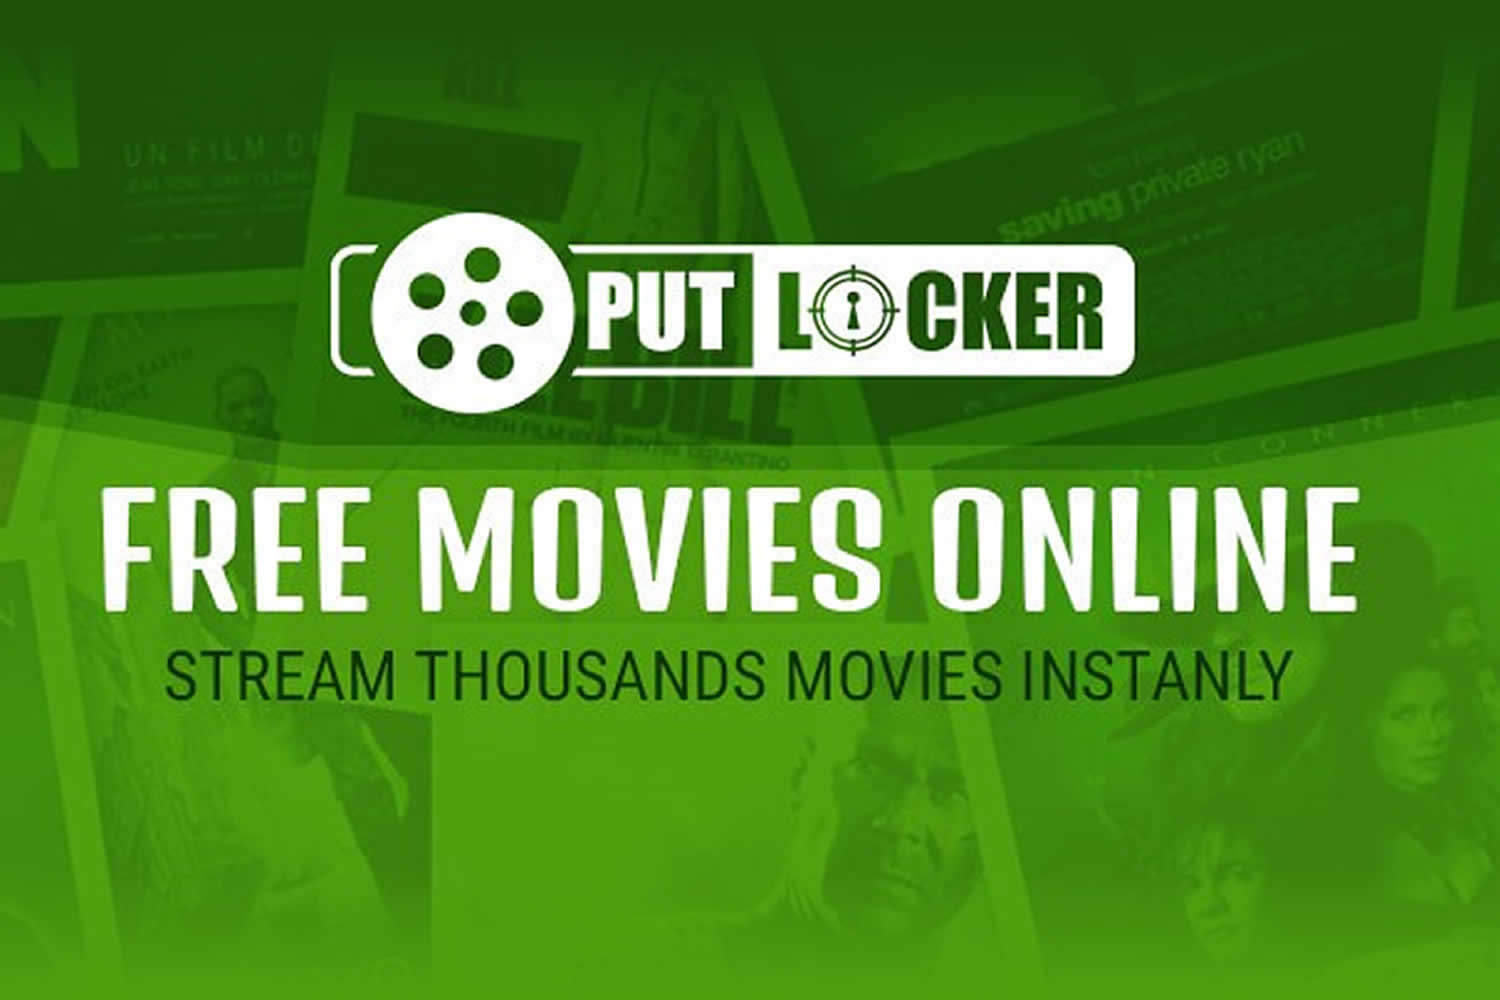 Watch El Regreso de la Bestia Putlocker Movies